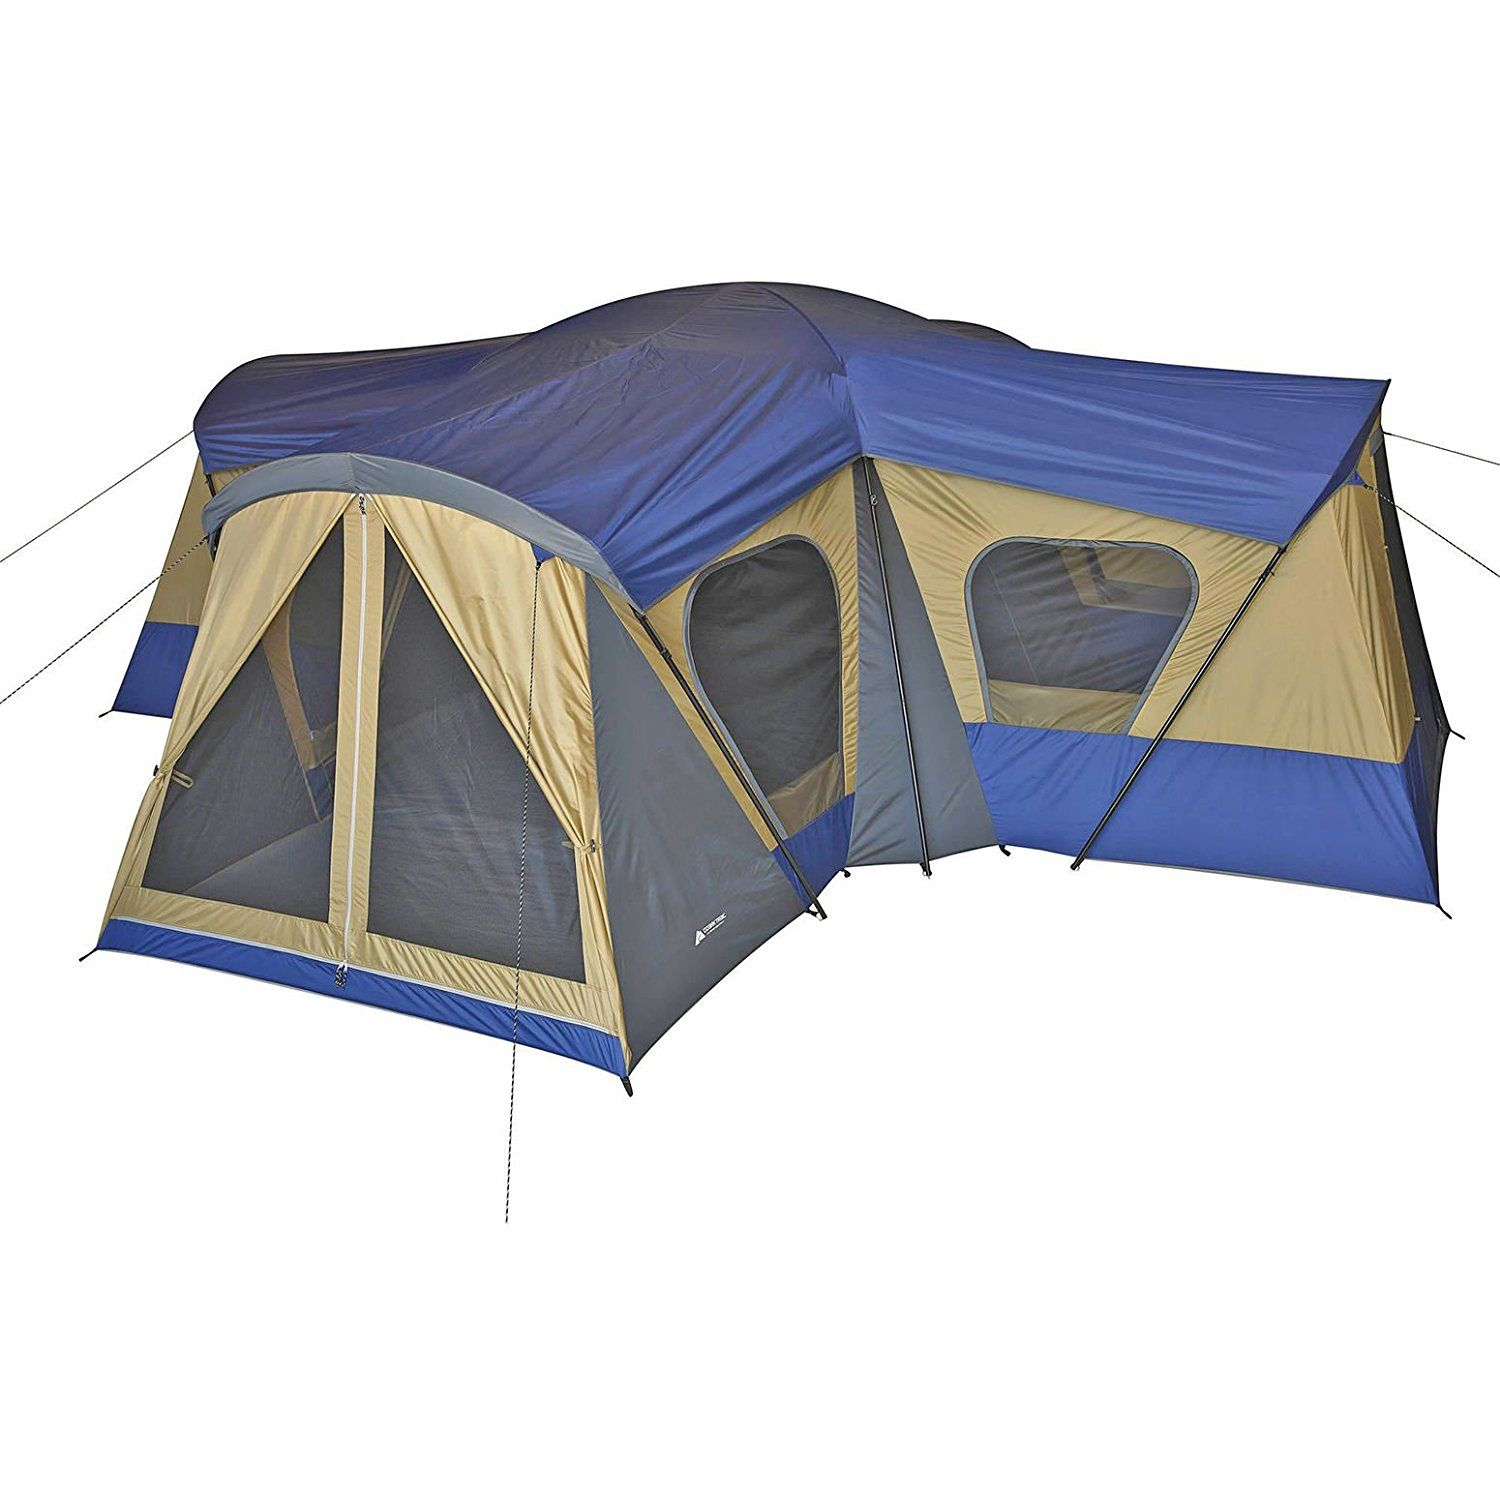 Family Cabin Tent 14 Person Base C& 4 Rooms Hiking C&ing Shelter Outdoor u003eu003e Details can be found  Hiking tents  sc 1 st  Pinterest & Ozark Trail Base Camp 14-Person Cabin Tent -- This is an Amazon ...